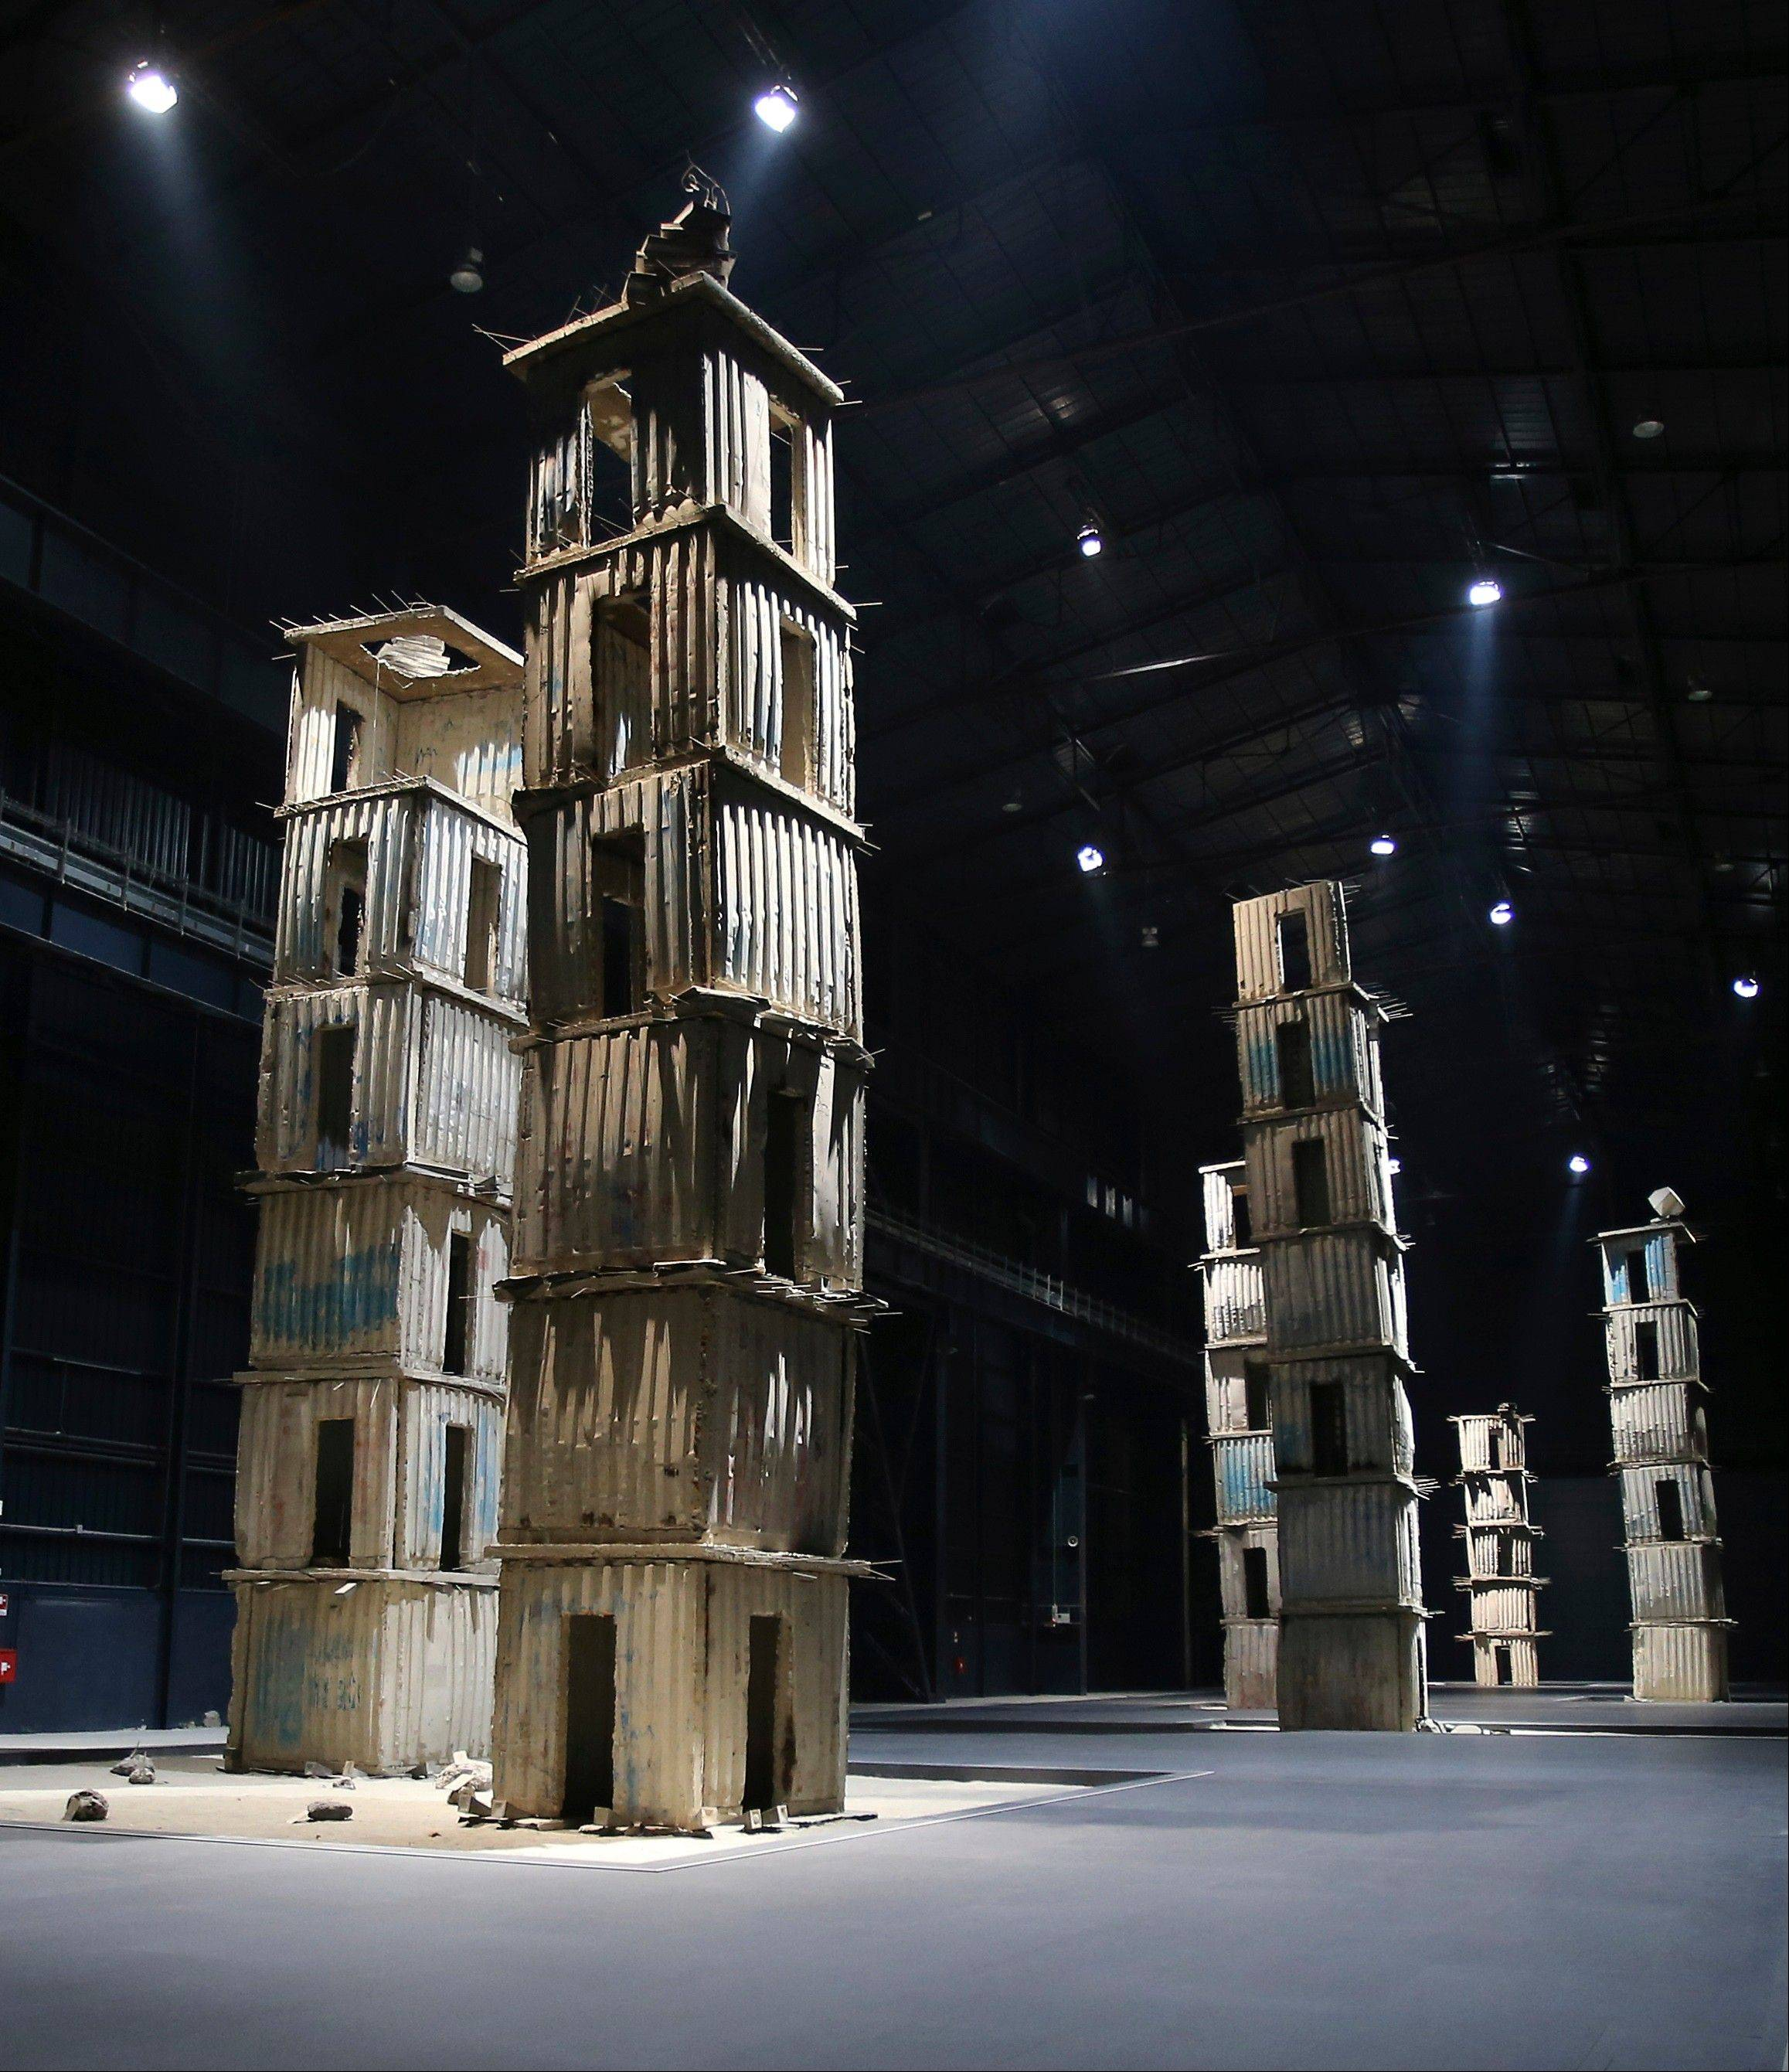 "A permanent installation called ""The Seven Heavenly Palaces"" by German artist Anselm Kiefer can be viewed at the Hangar Bicocca museum in Milan, Italy. Visitors to Italy can feast on Renaissance and Baroque treasures, but there are increasing efforts to promote contemporary art -- including the Hangar Bicocca founded and funded by the Pirelli tire company."